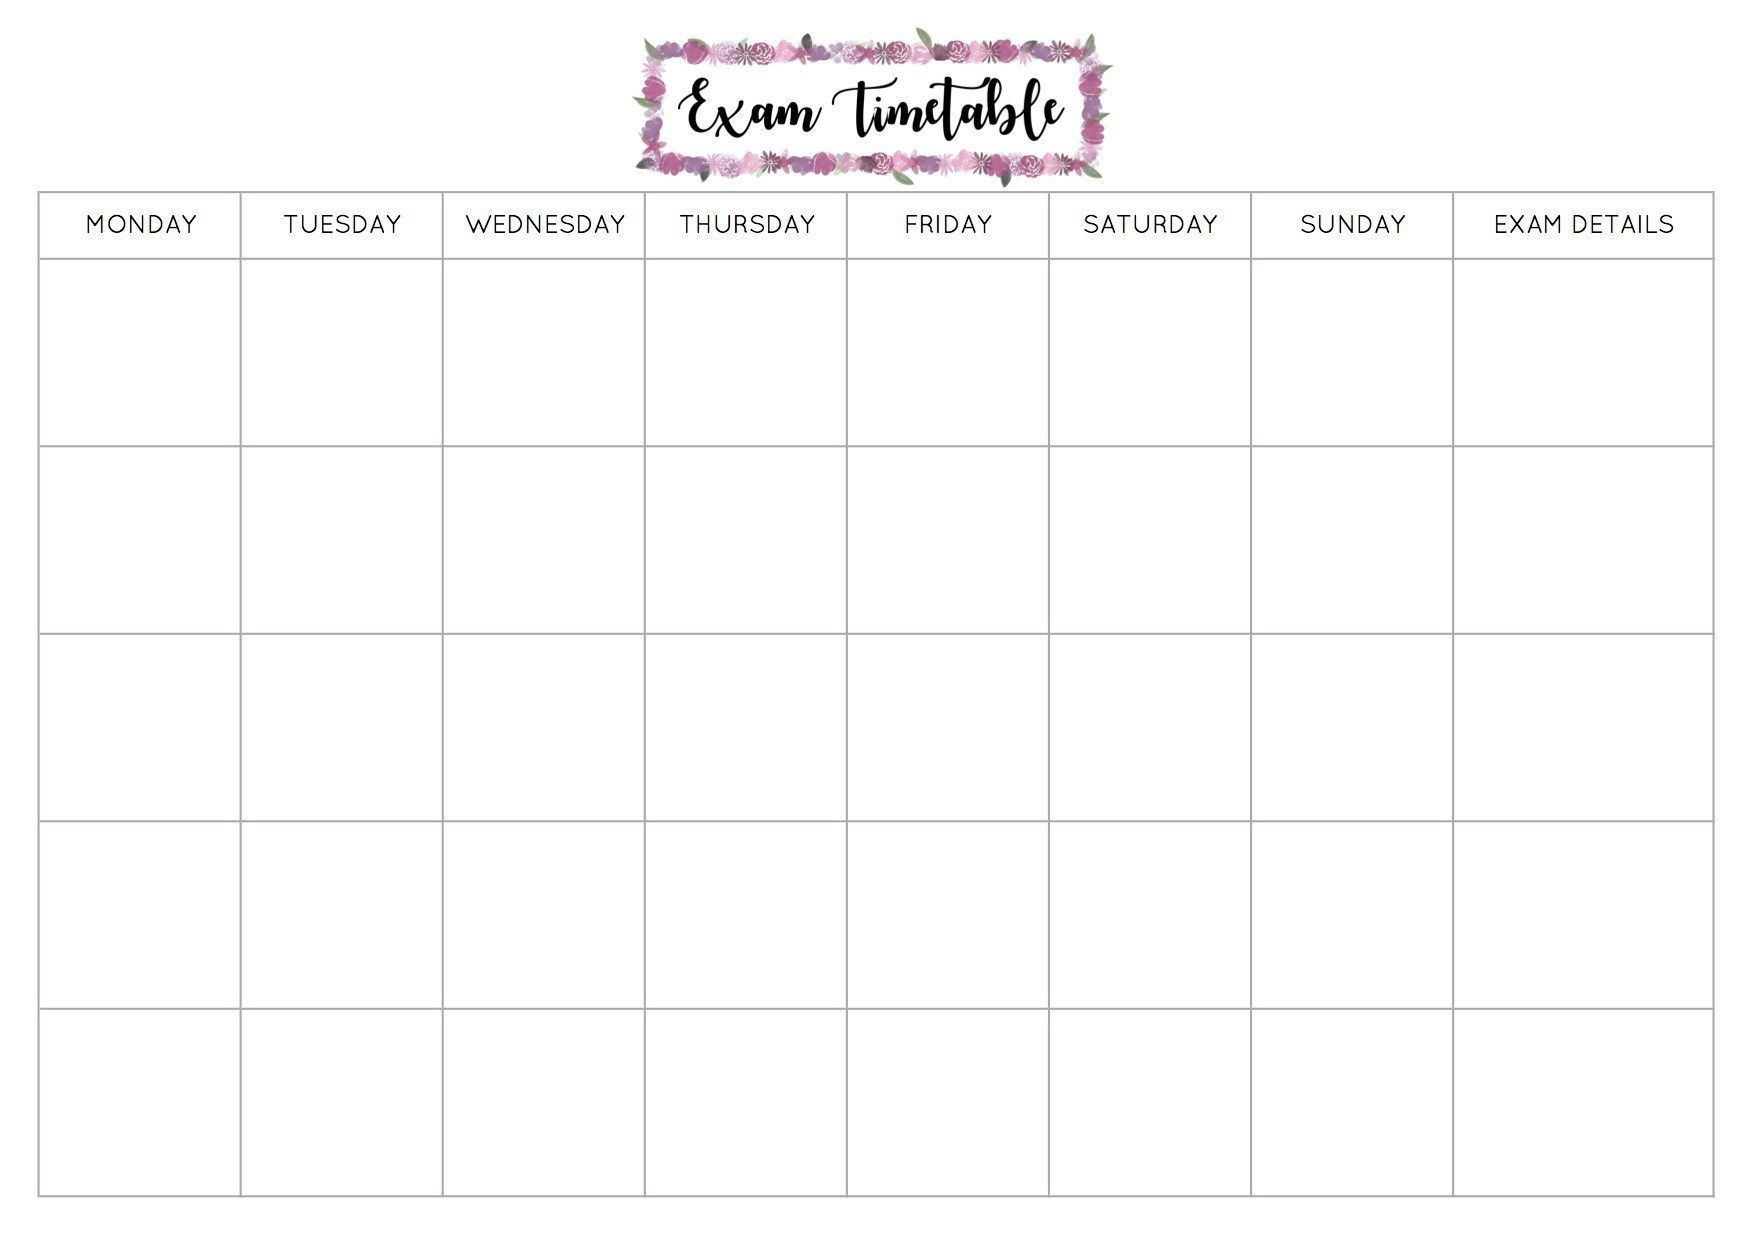 Free Exam Timetable Printable | Study Schedule Template